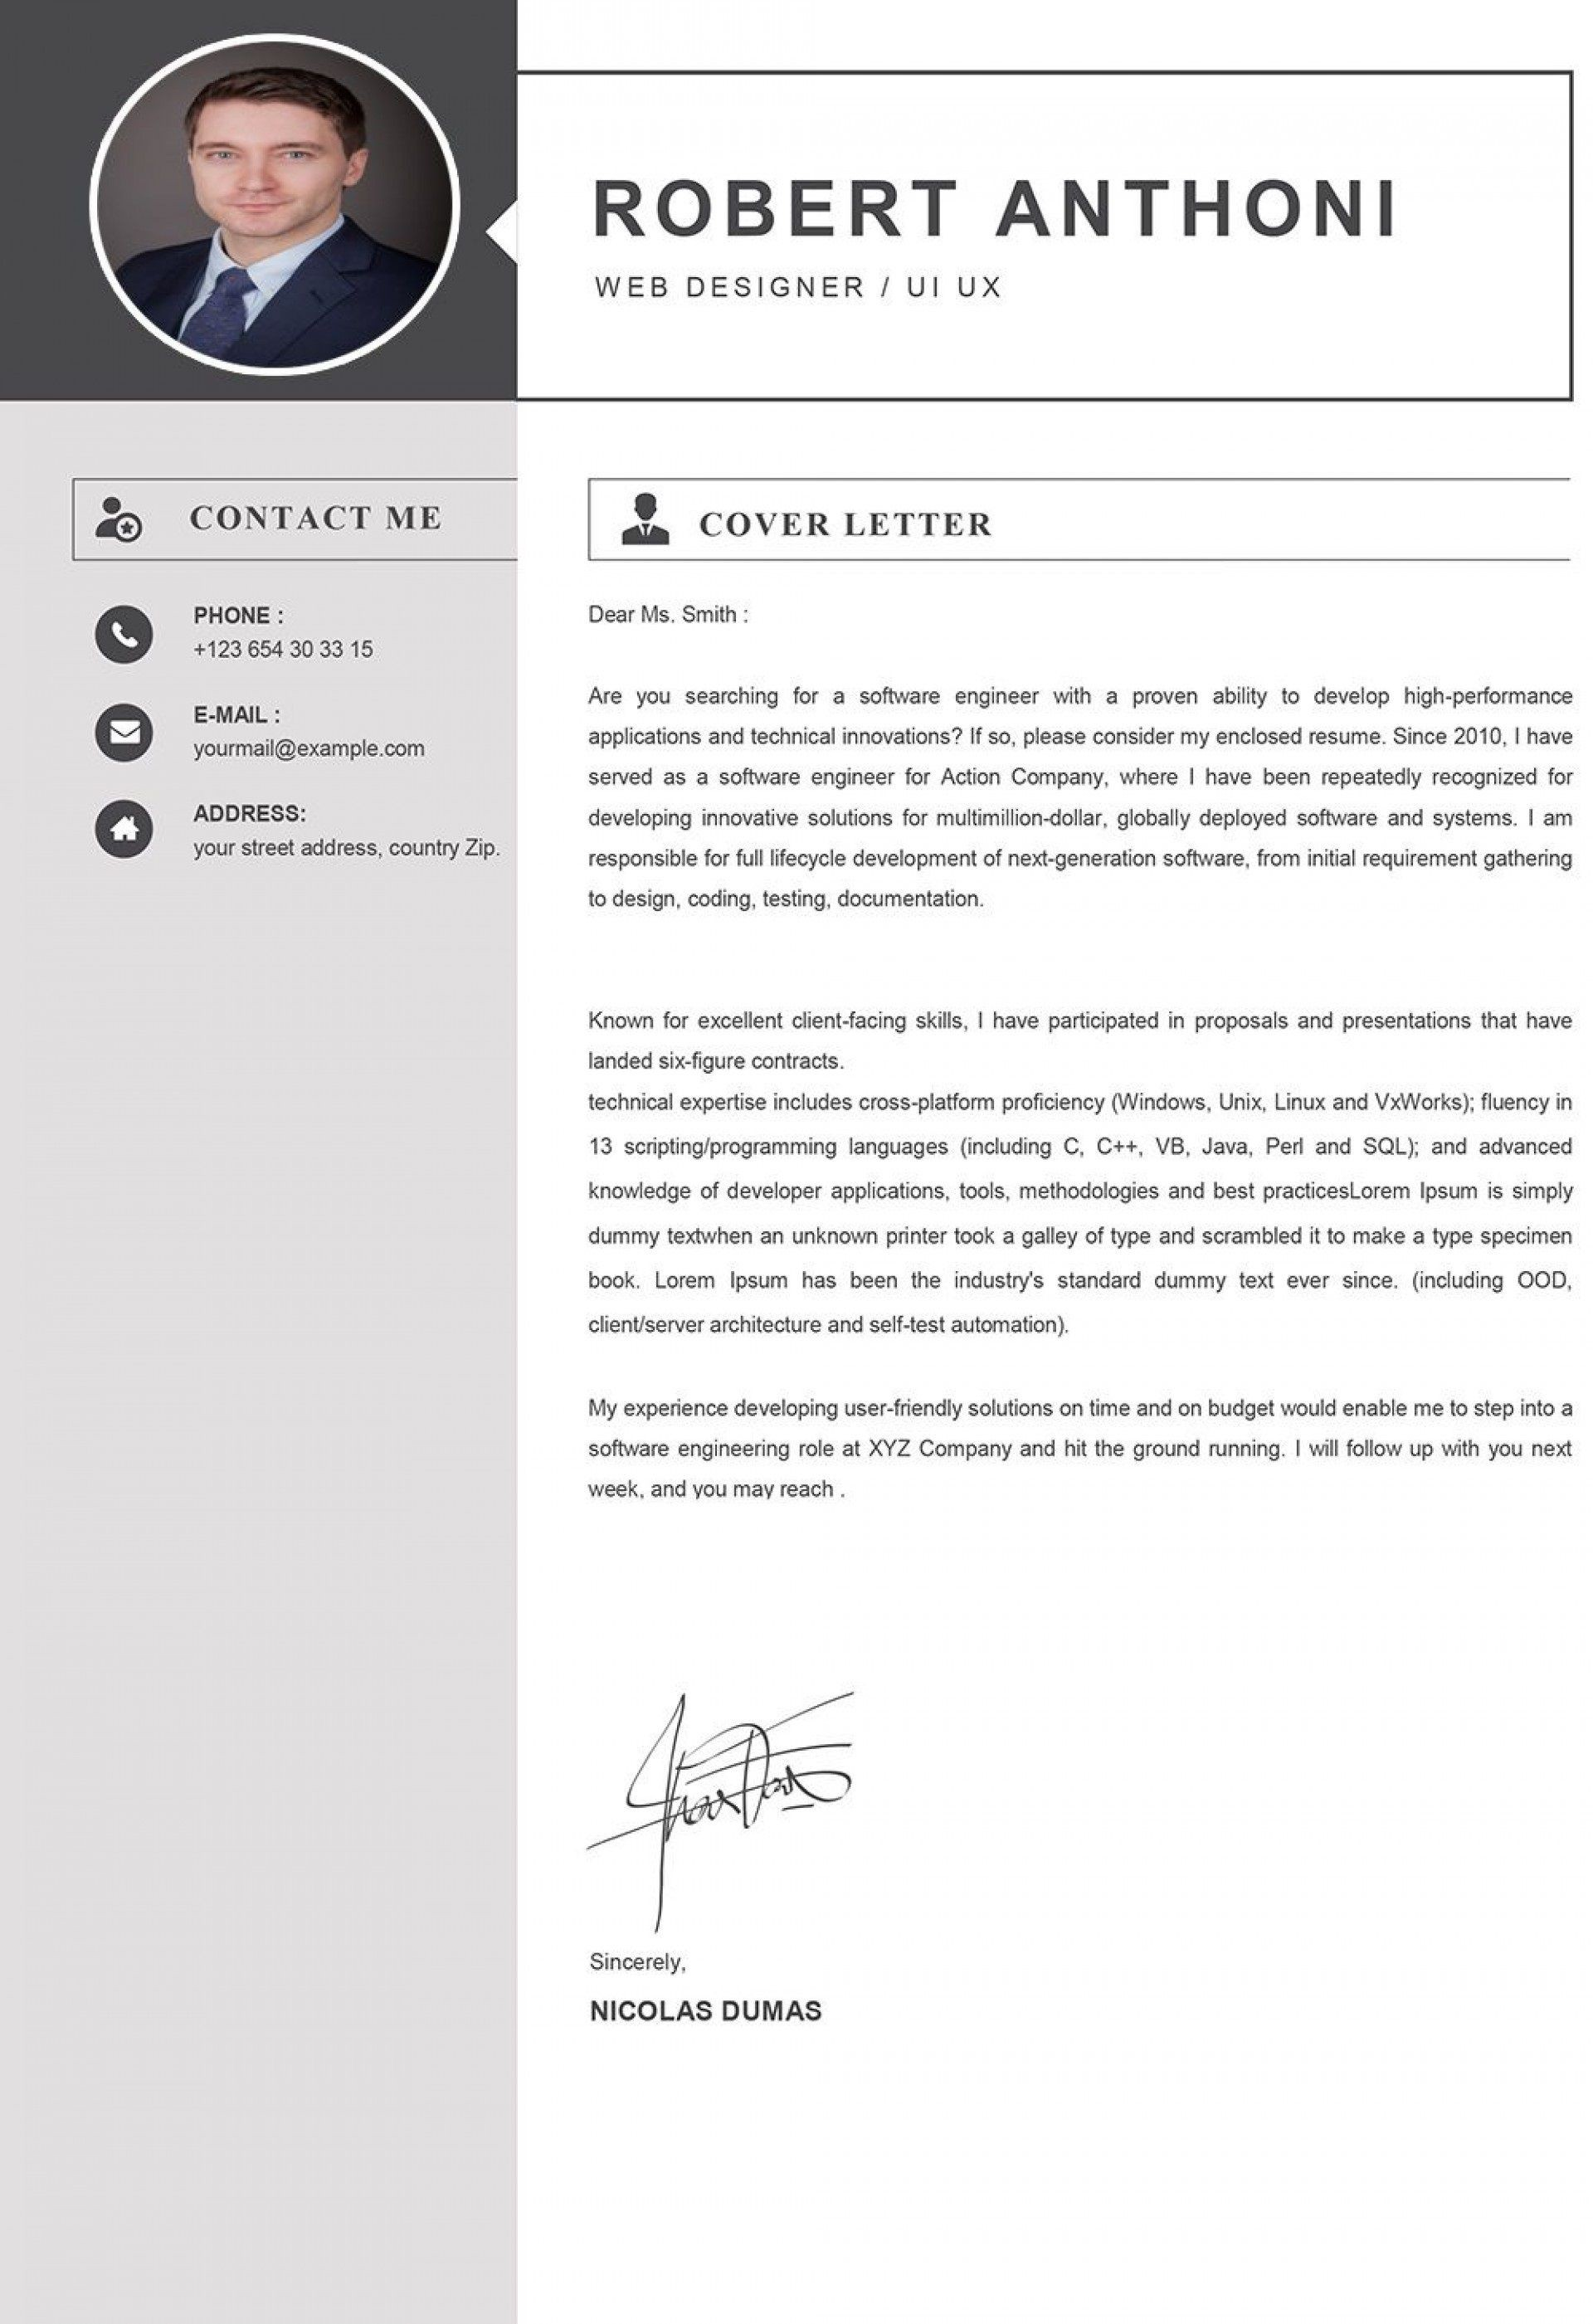 006 Archaicawful Cover Letter Template Download Mac Inspiration  Free1920